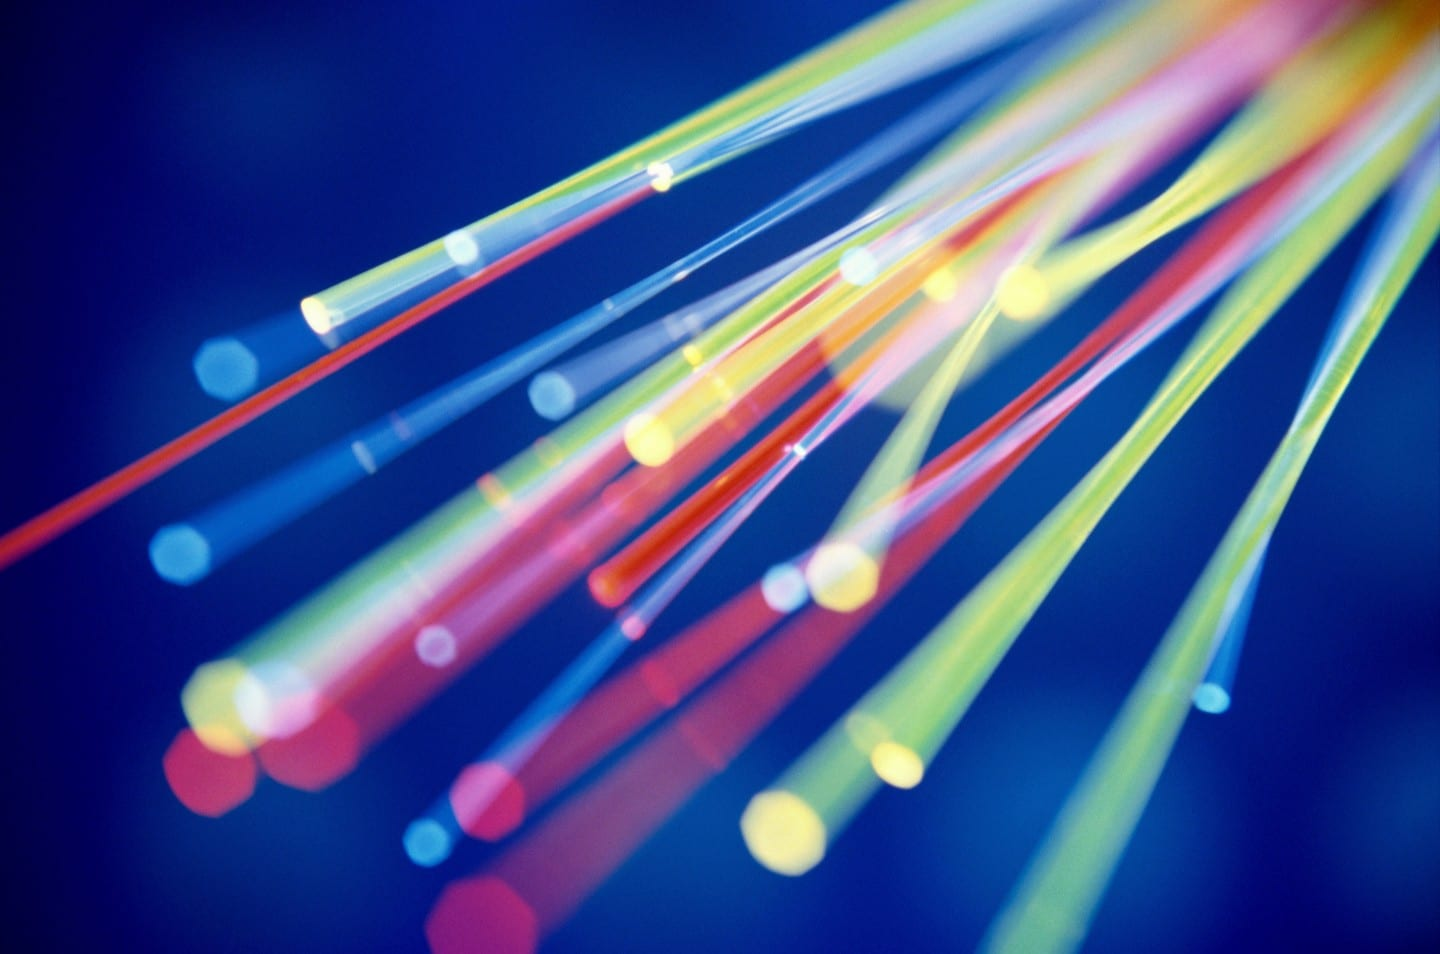 Emerging vRAN Architecture Drives Demand for High-  Capacity Fiber Optic Fronthaul